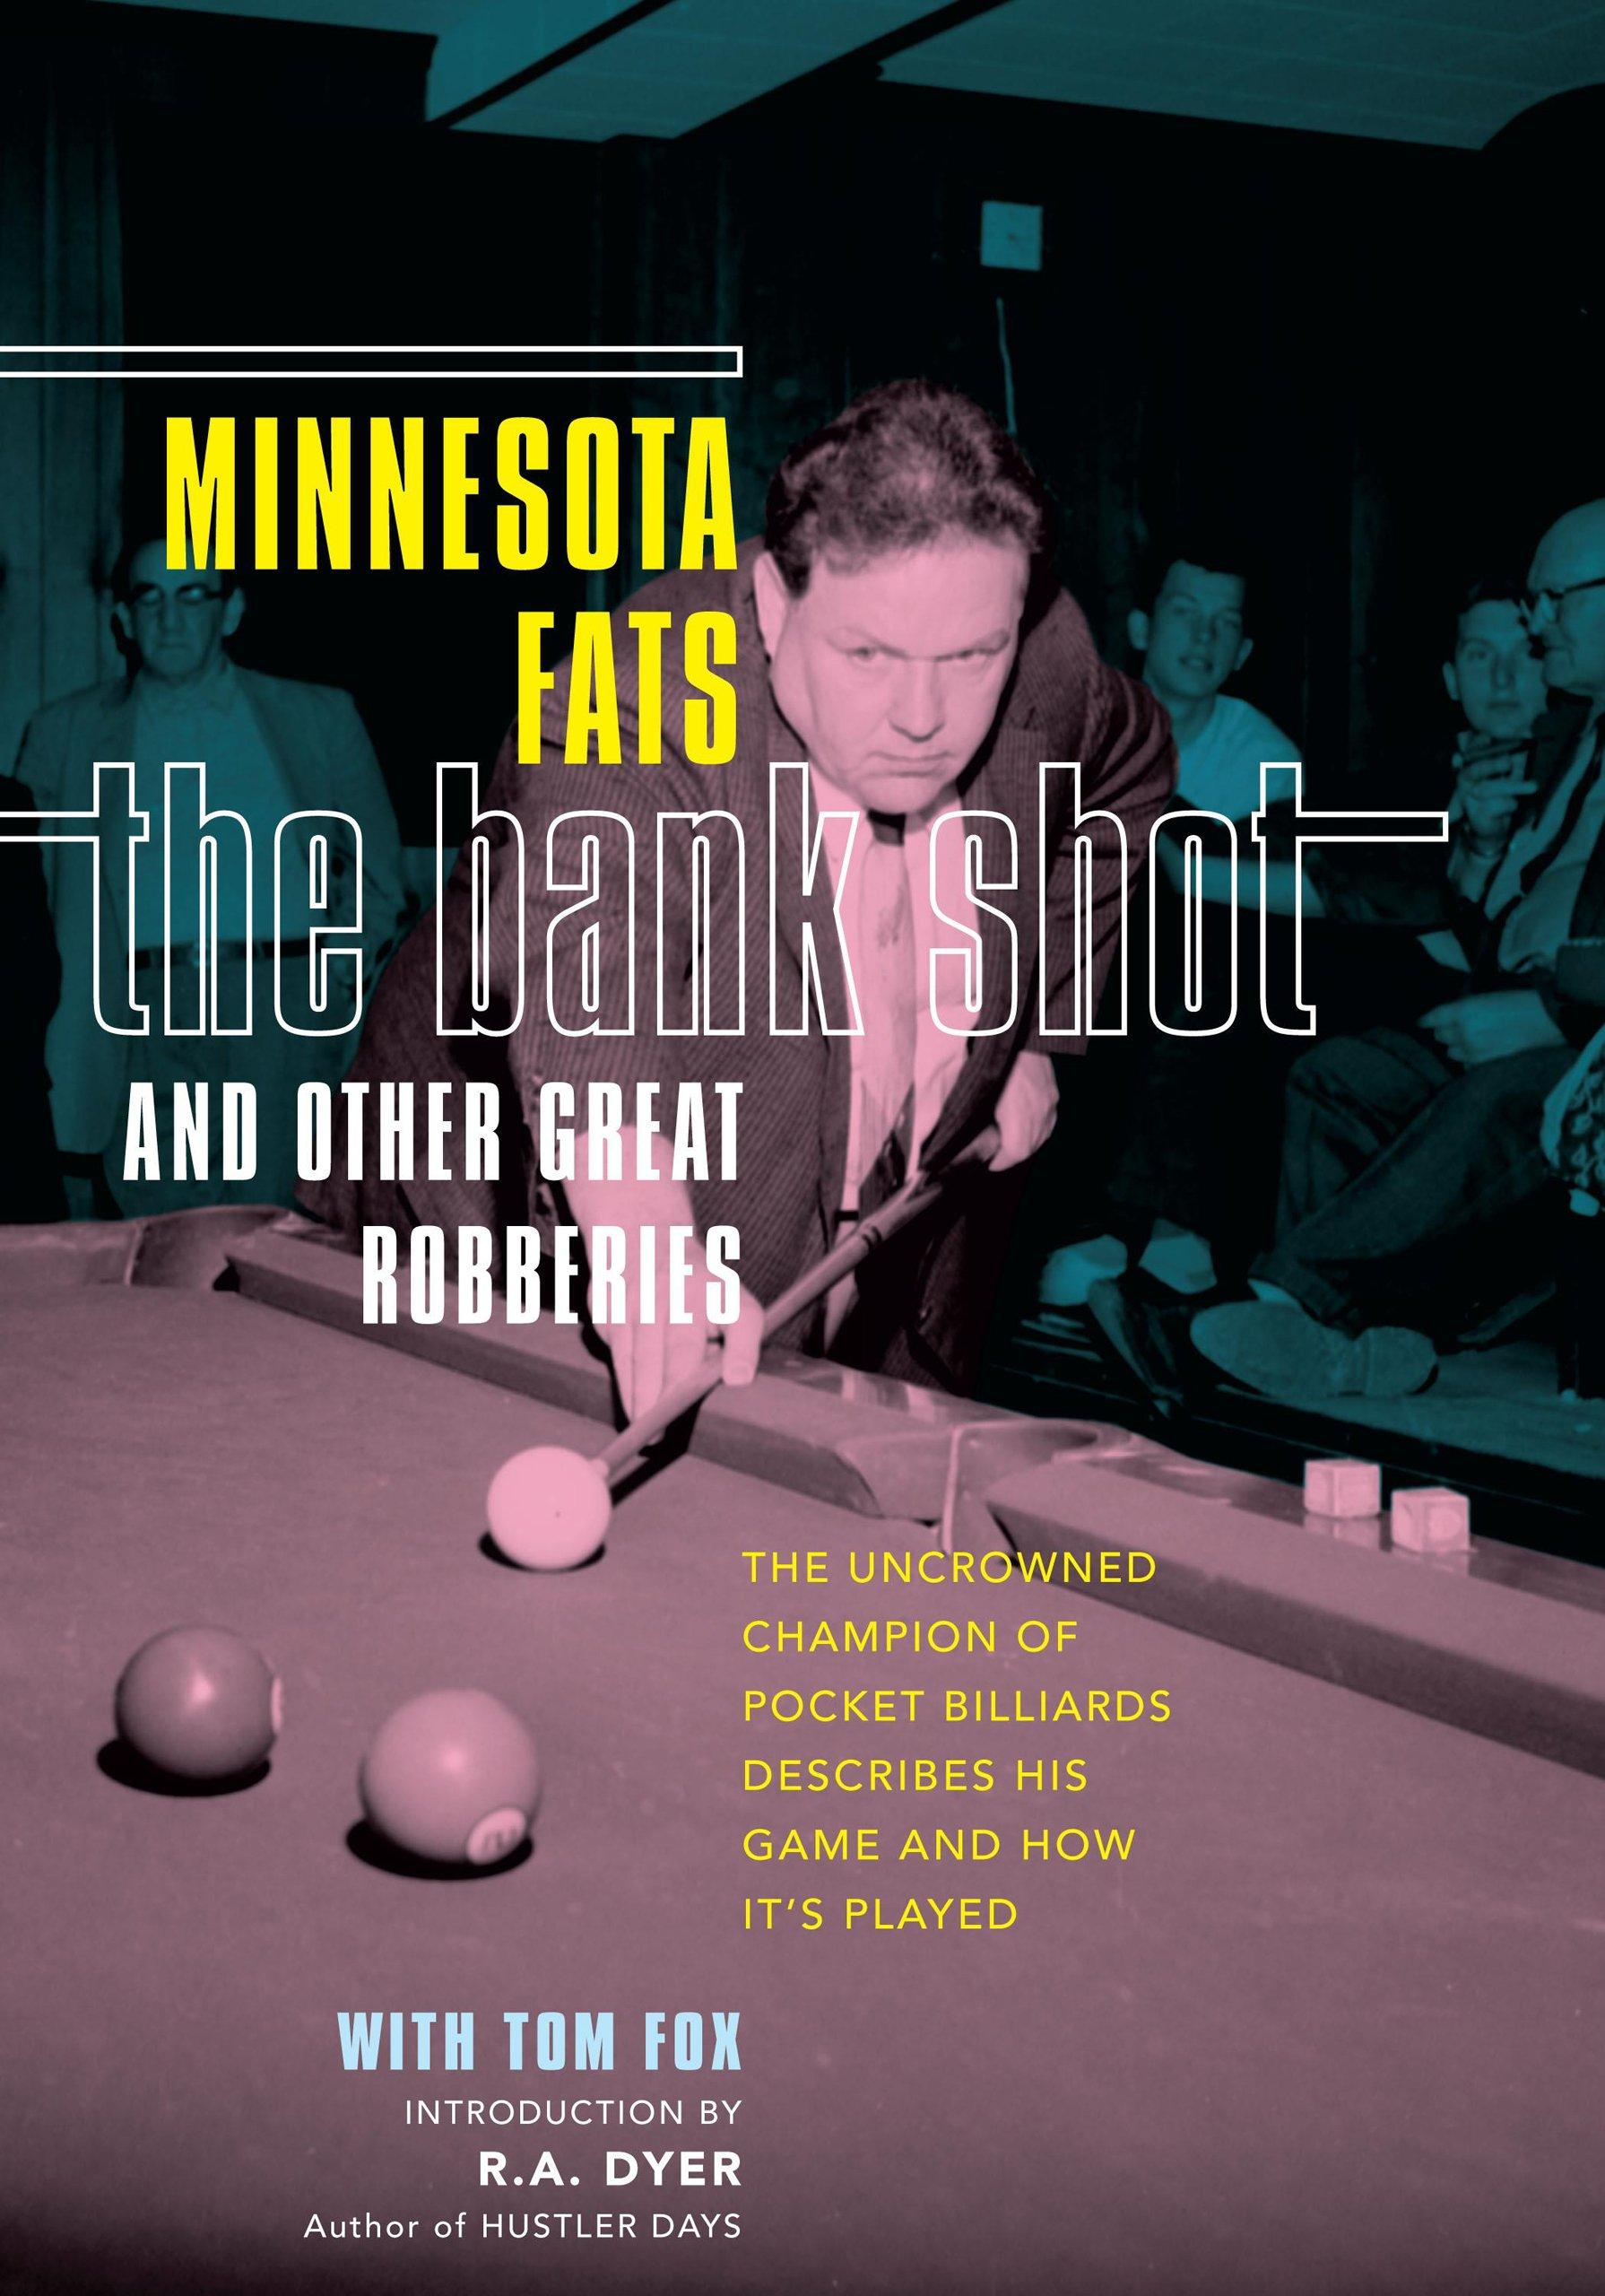 Bank Shot and Other Great Robberies: The Uncrowned Champion Of Pocket Billiards Describes His Game And How Its Played: Amazon.es: Minnesota, Fats, Fox, Tom: Libros en idiomas extranjeros